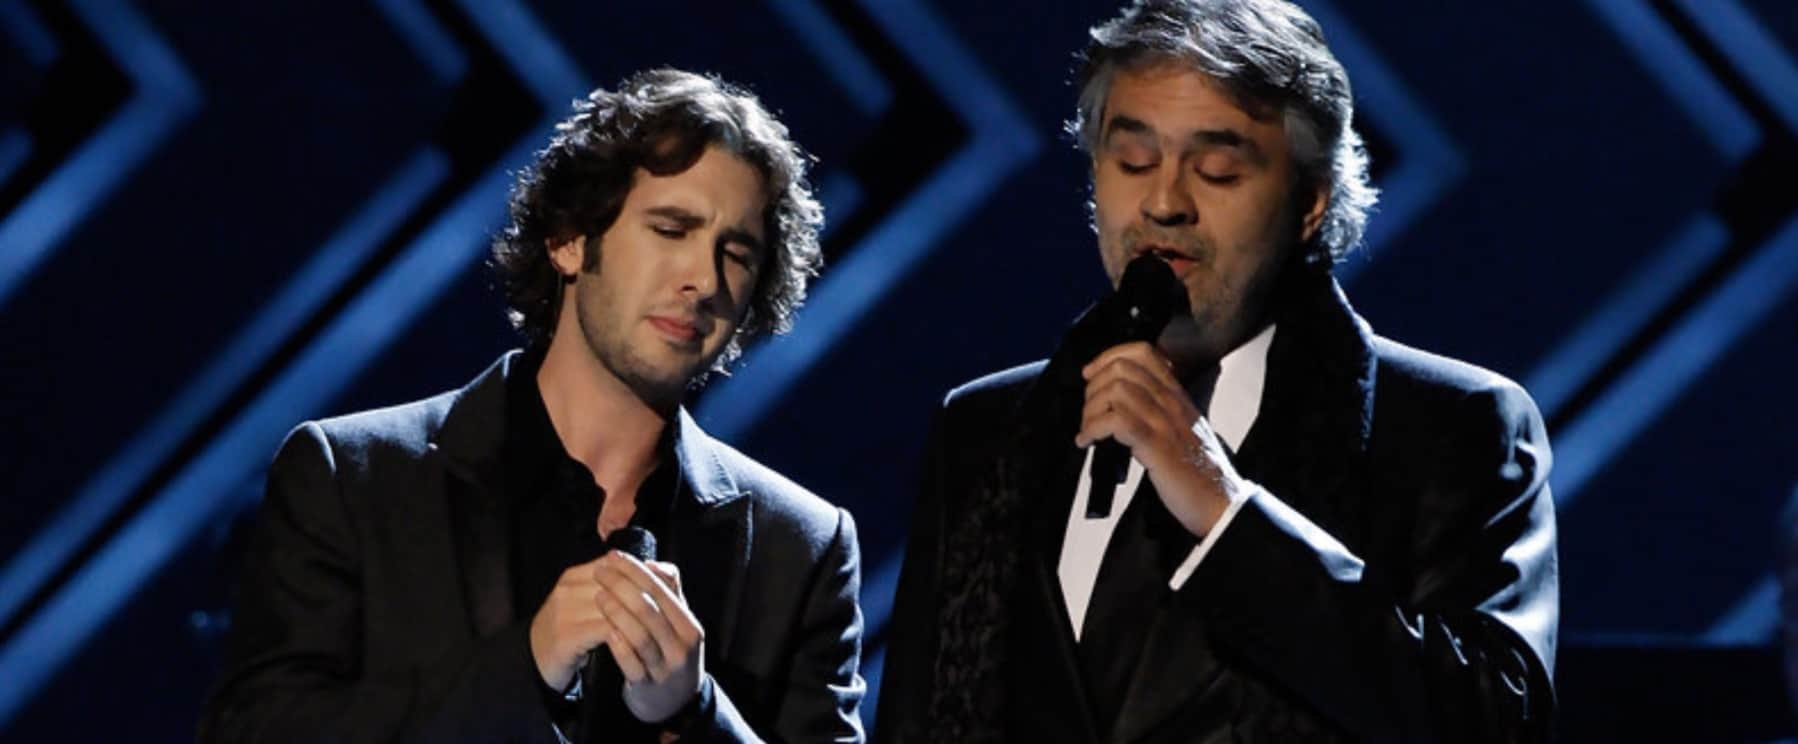 Andrea Bocelli and Josh Groban